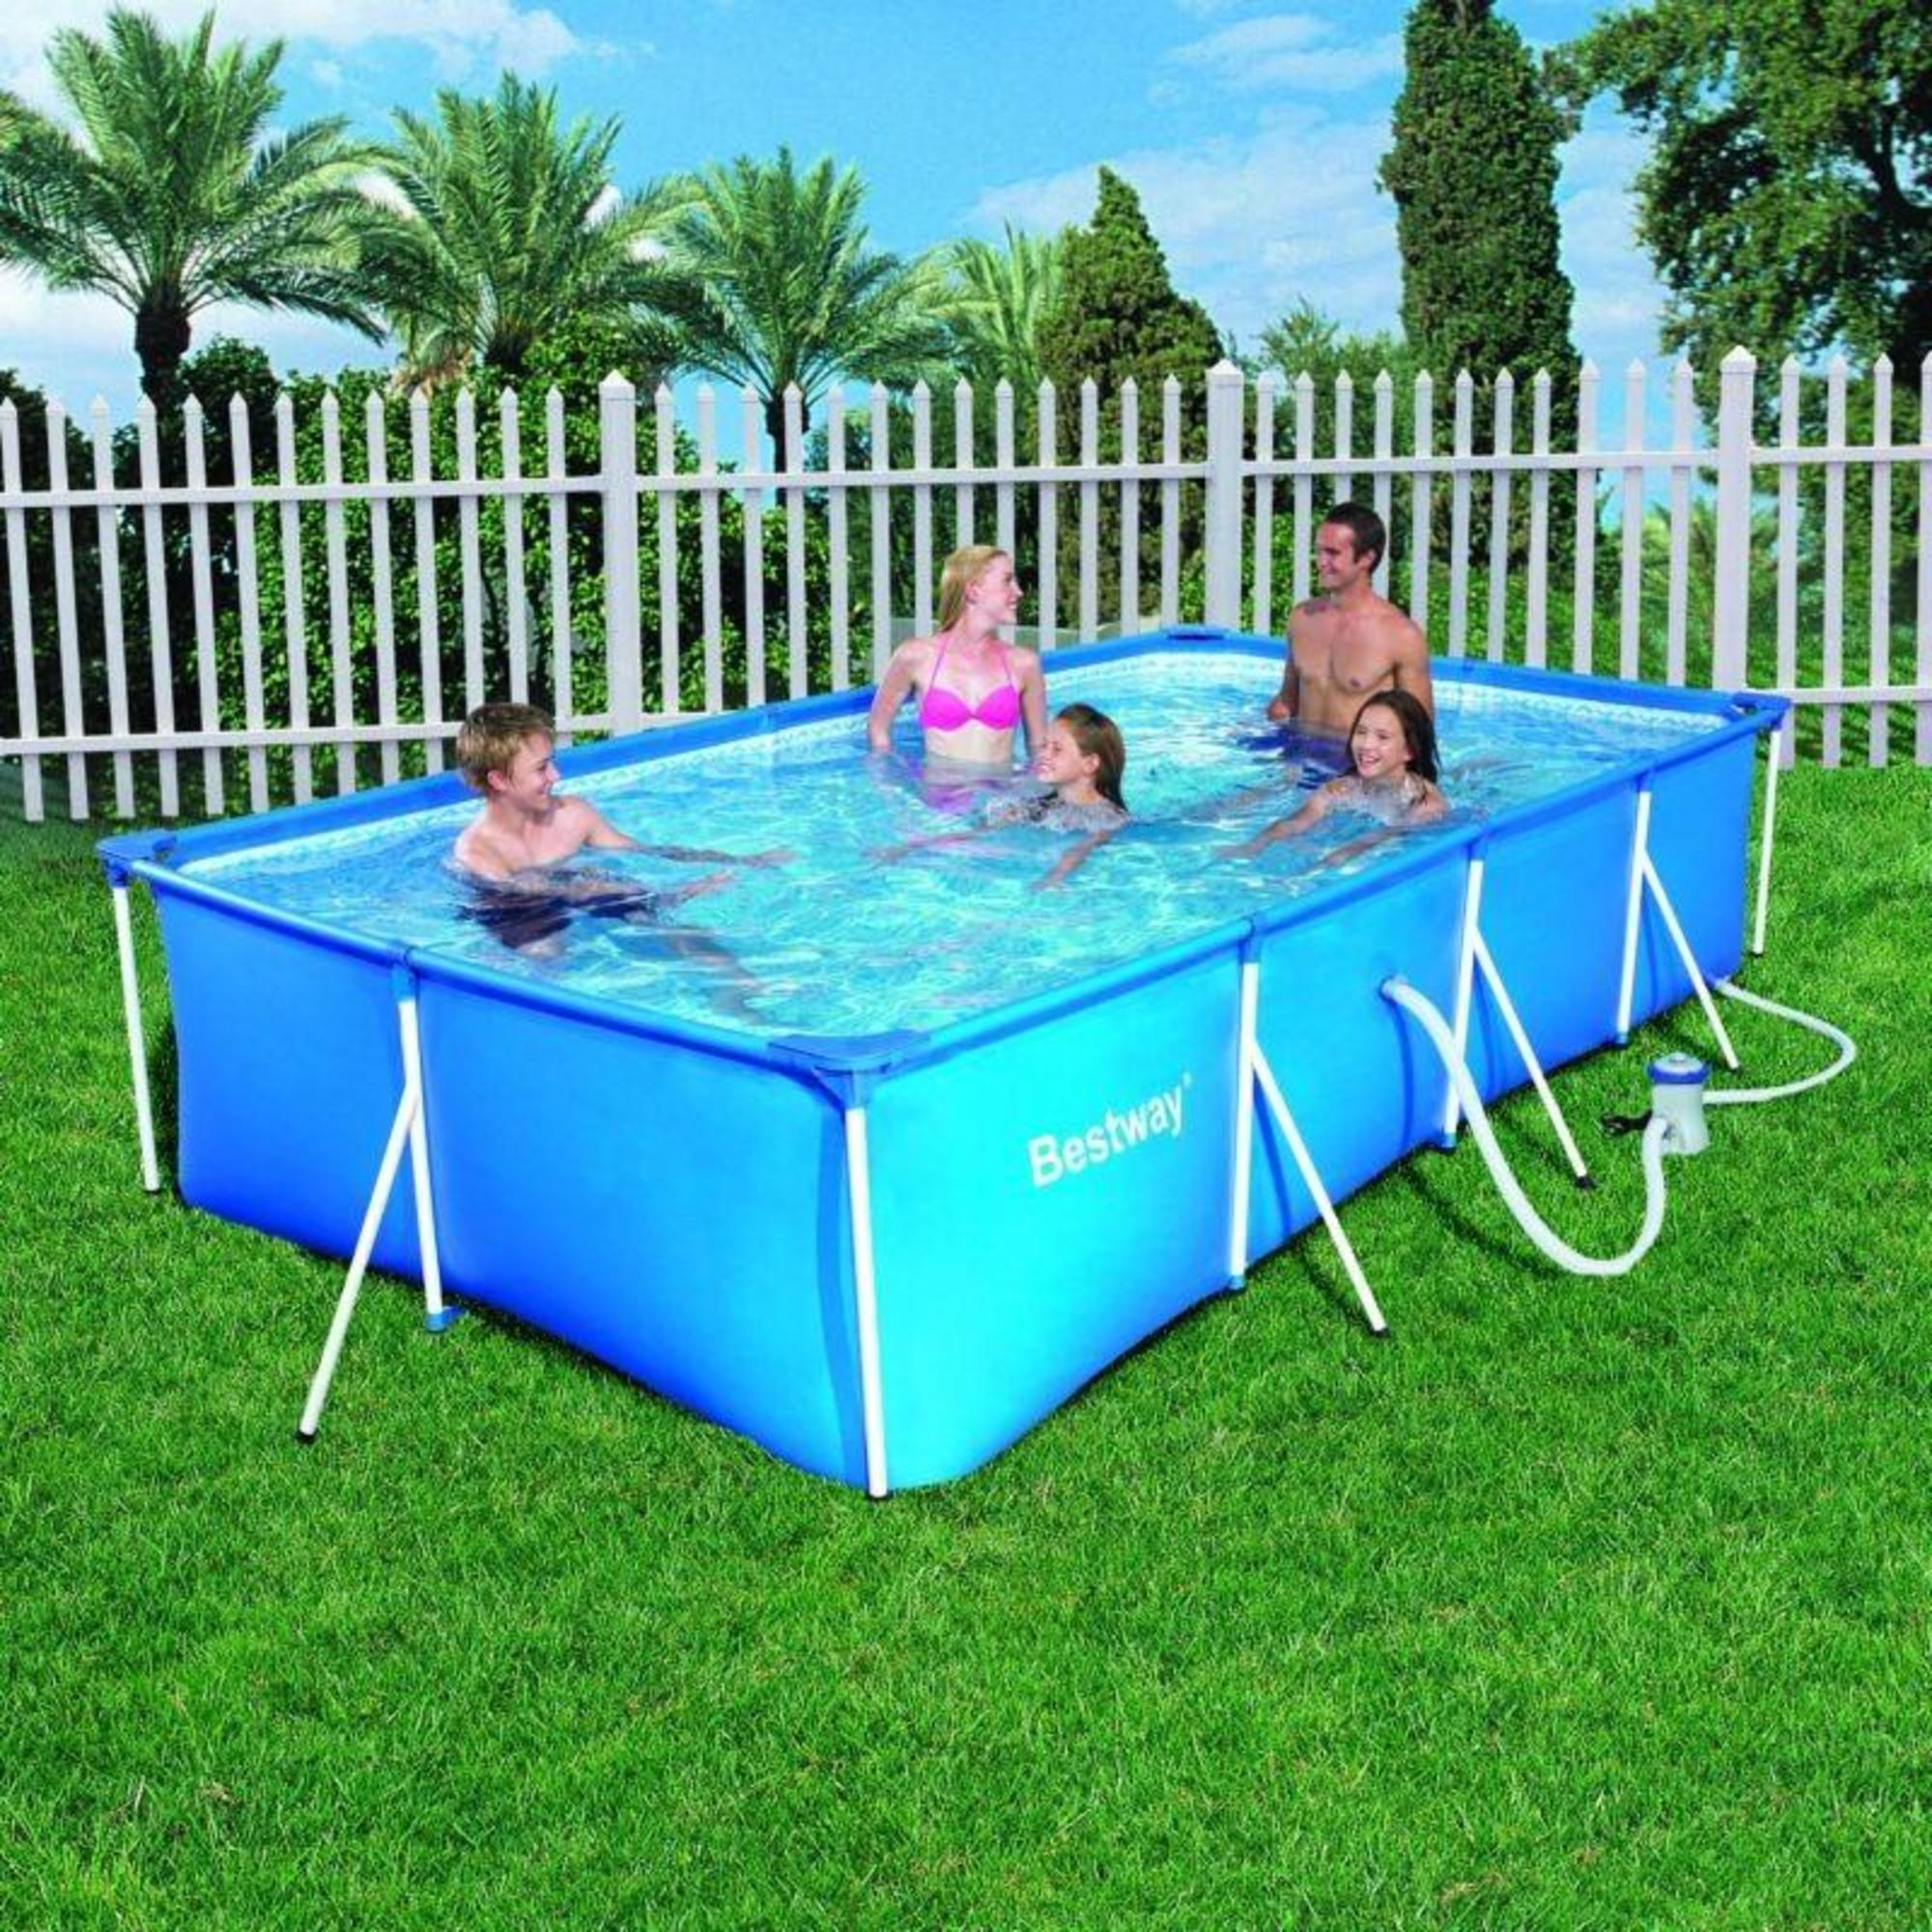 Piscina desmontable nataci n bestway rectangular tubular for Piscinas desmontables decathlon 2016